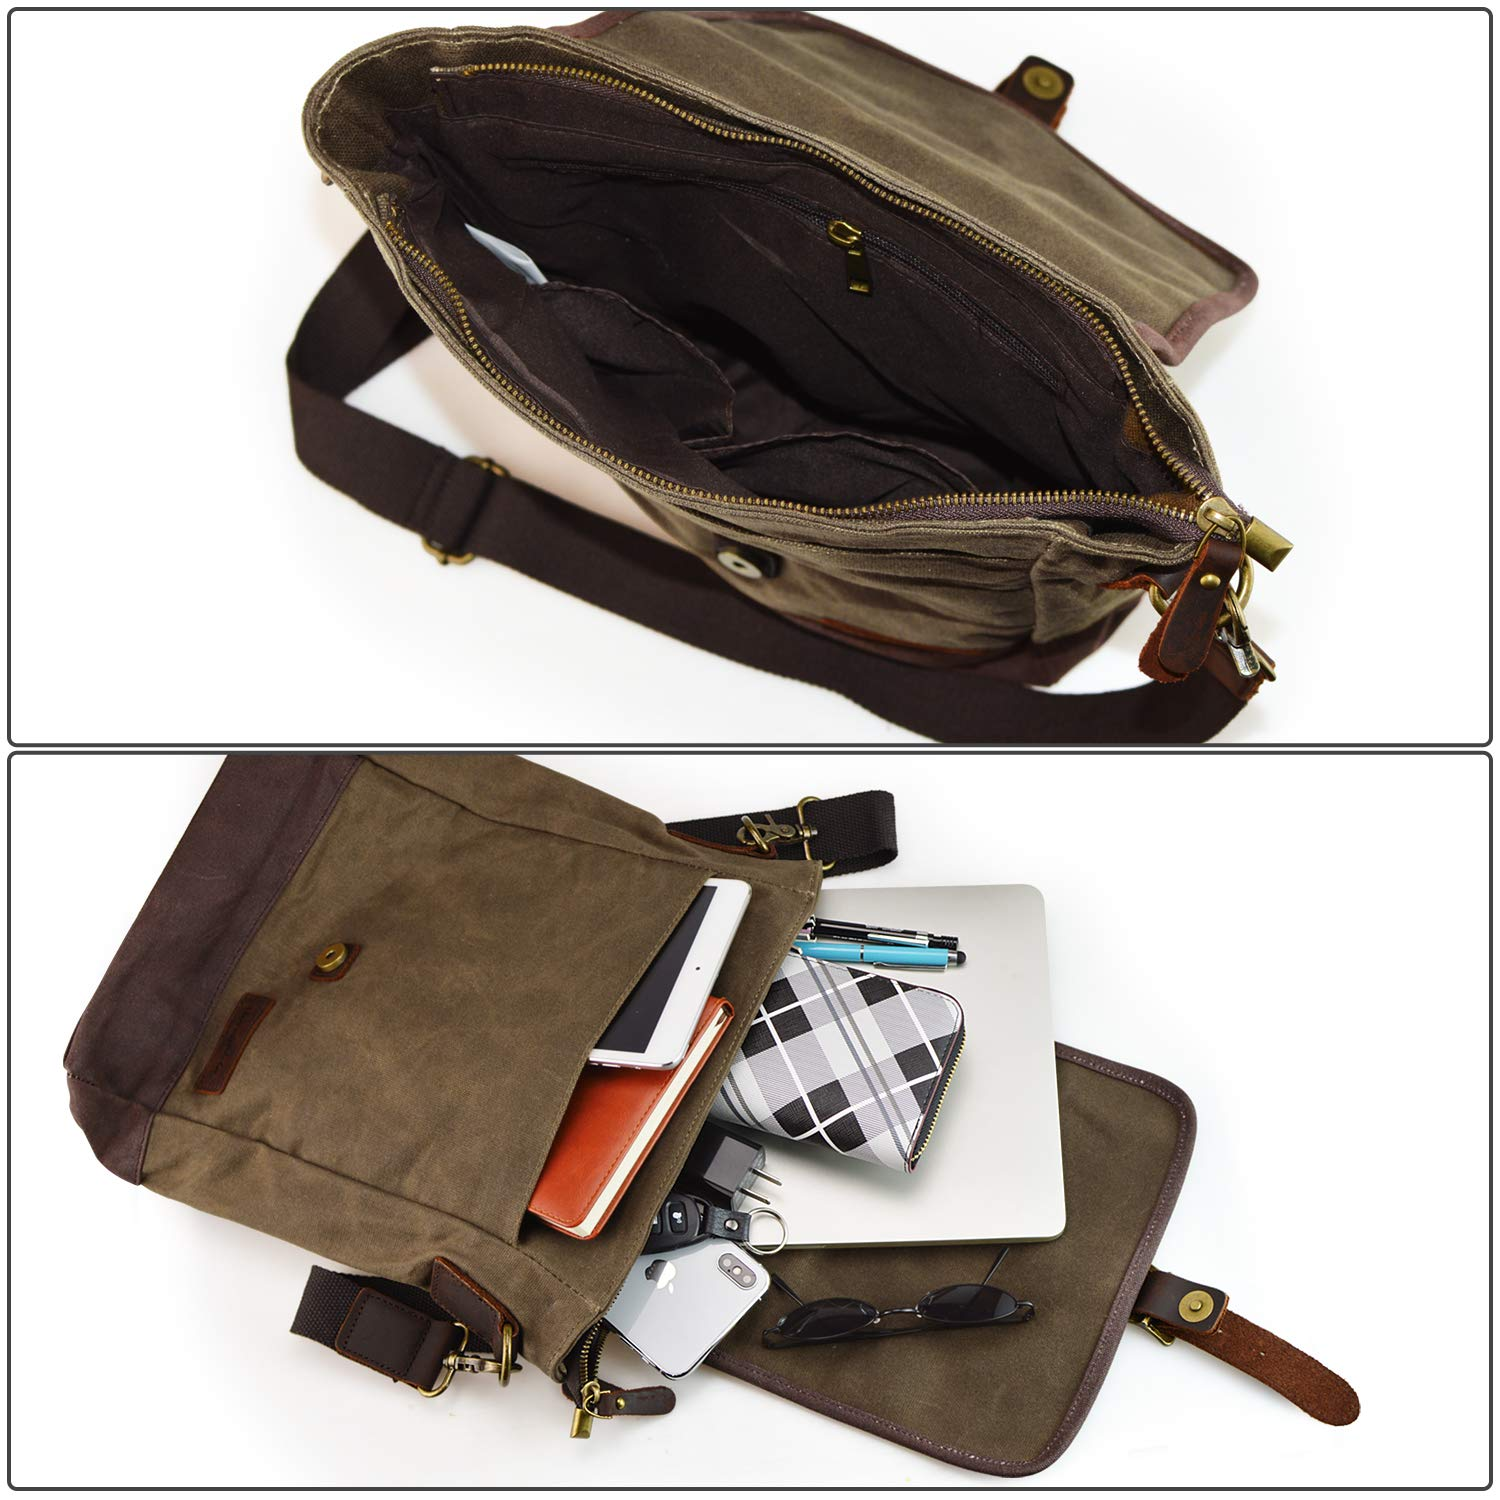 SHANGRI-LA Small Messenger Bag for Men and Women Waxed Canvas Purse Waterproof Crossbody Satchel Bag Sling Pack